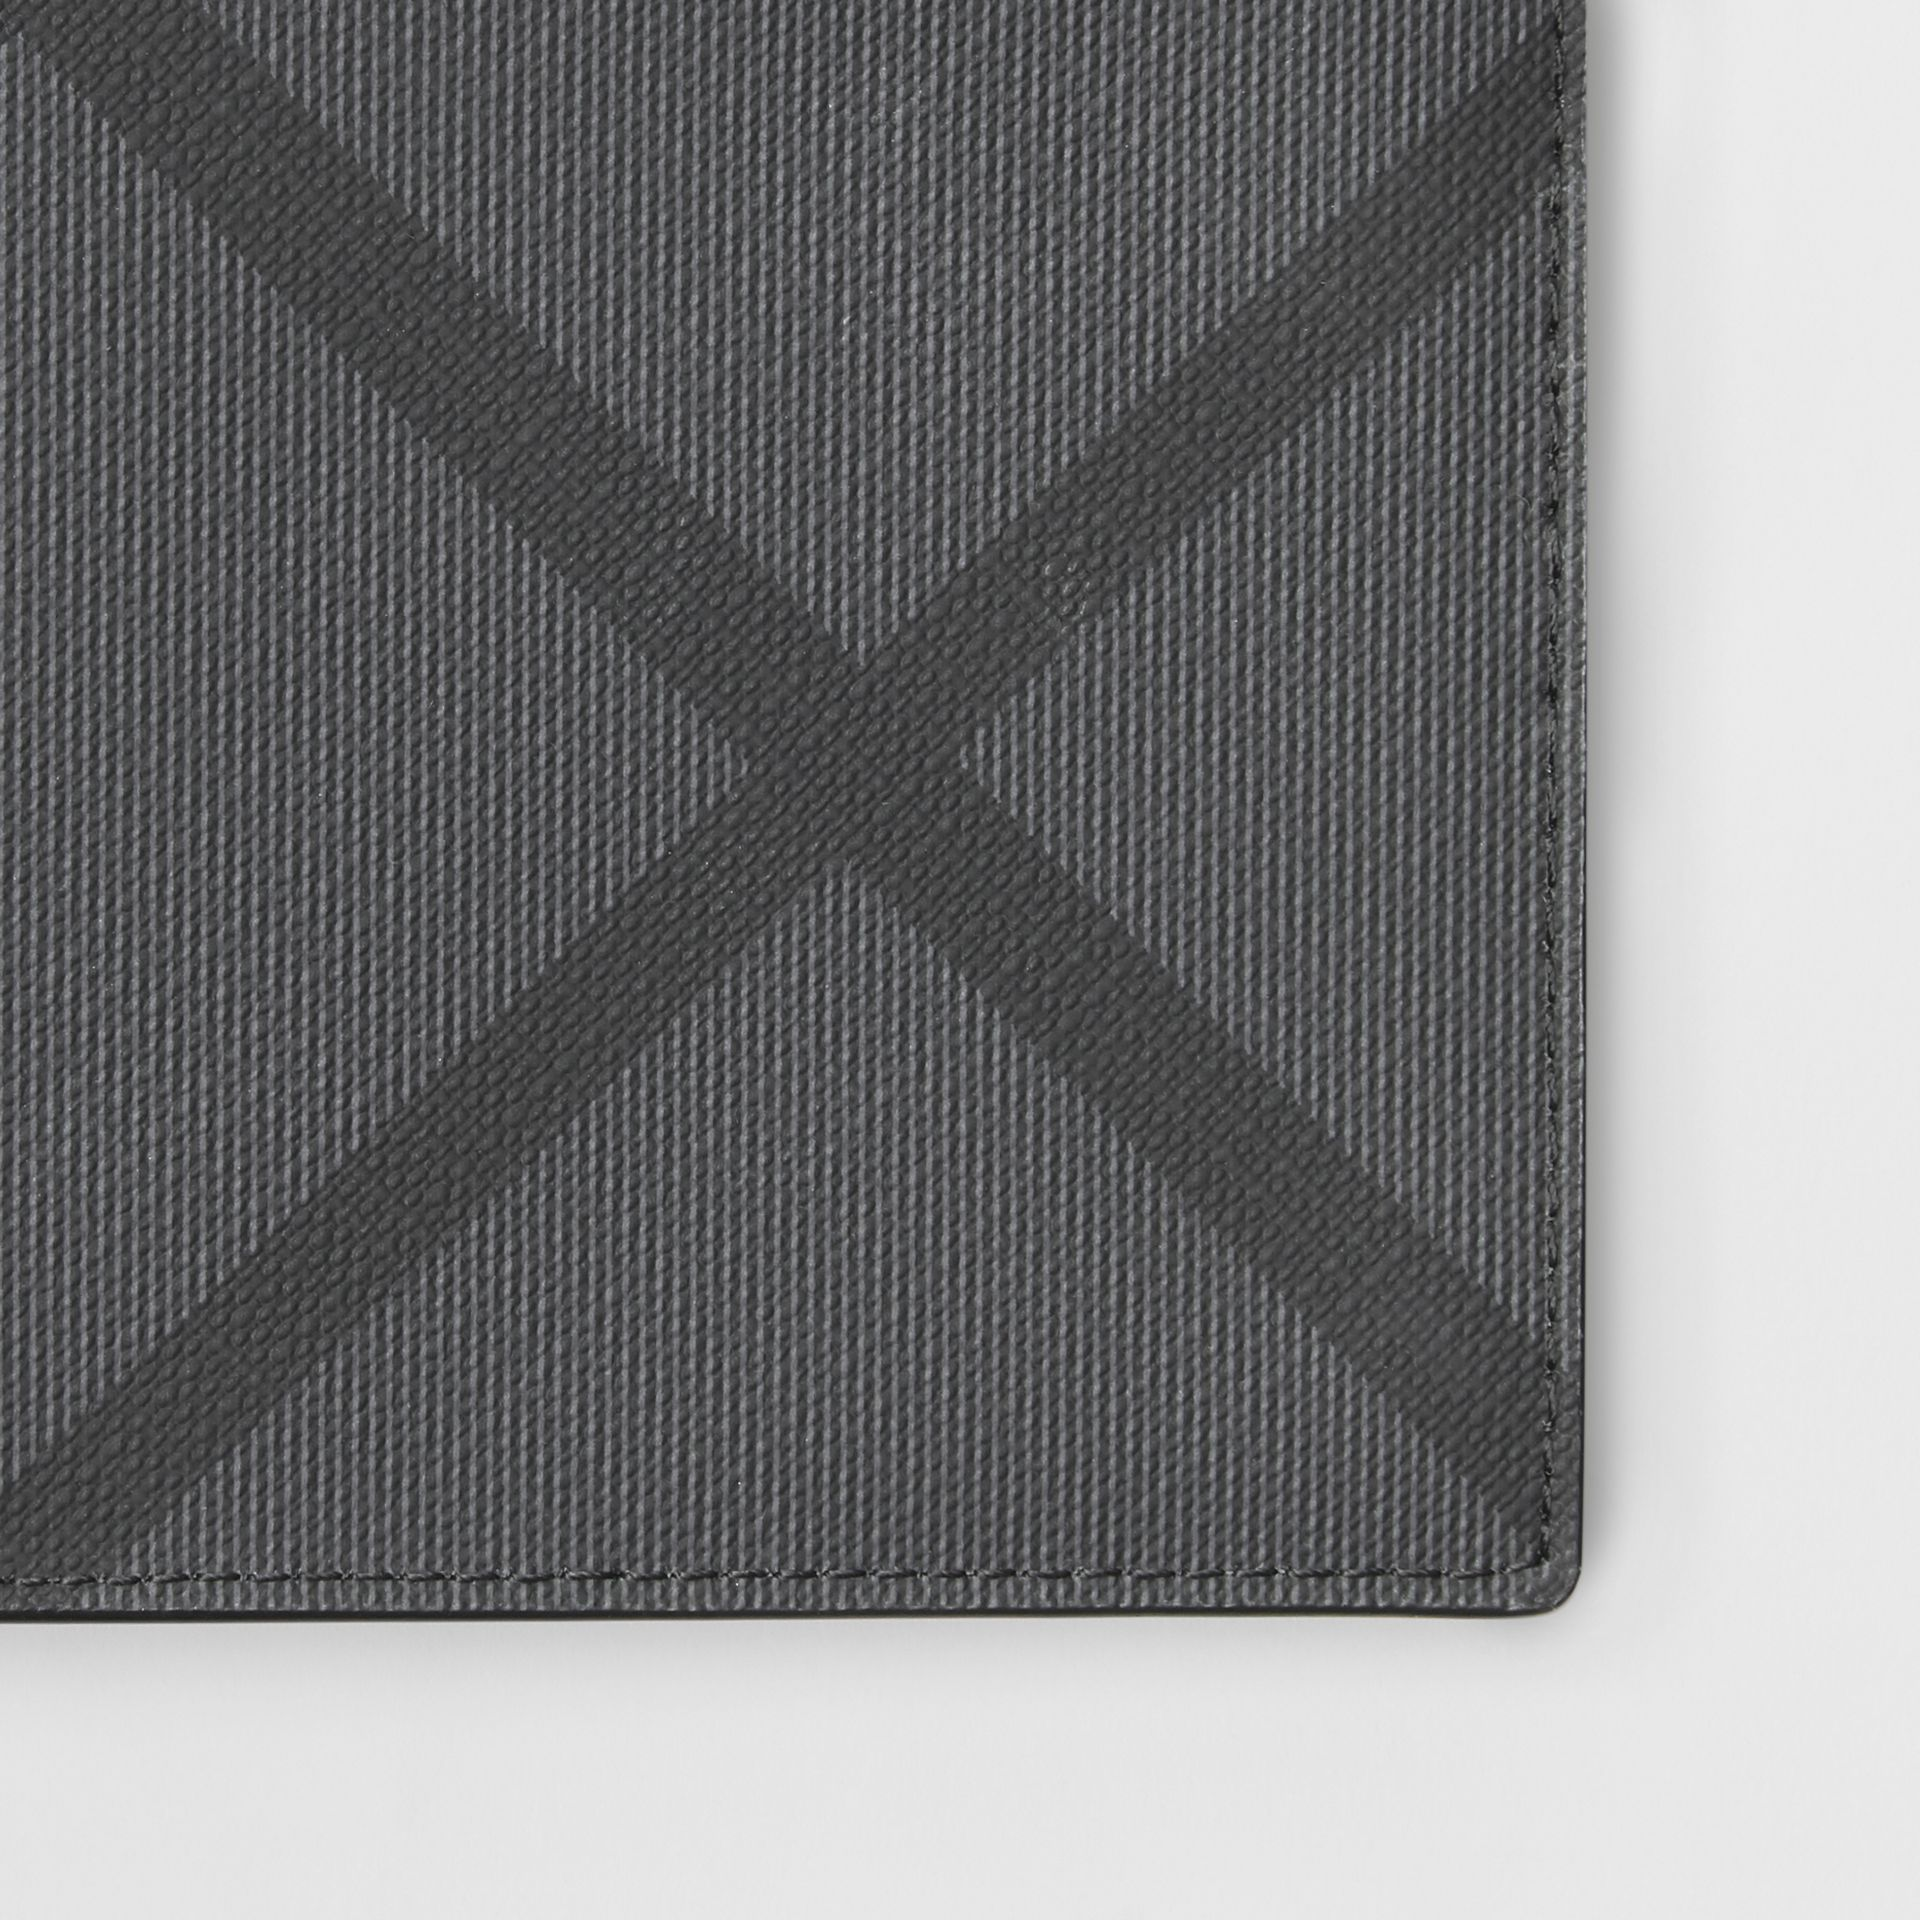 London Check ID Wallet in Charcoal/black - Men | Burberry - gallery image 1